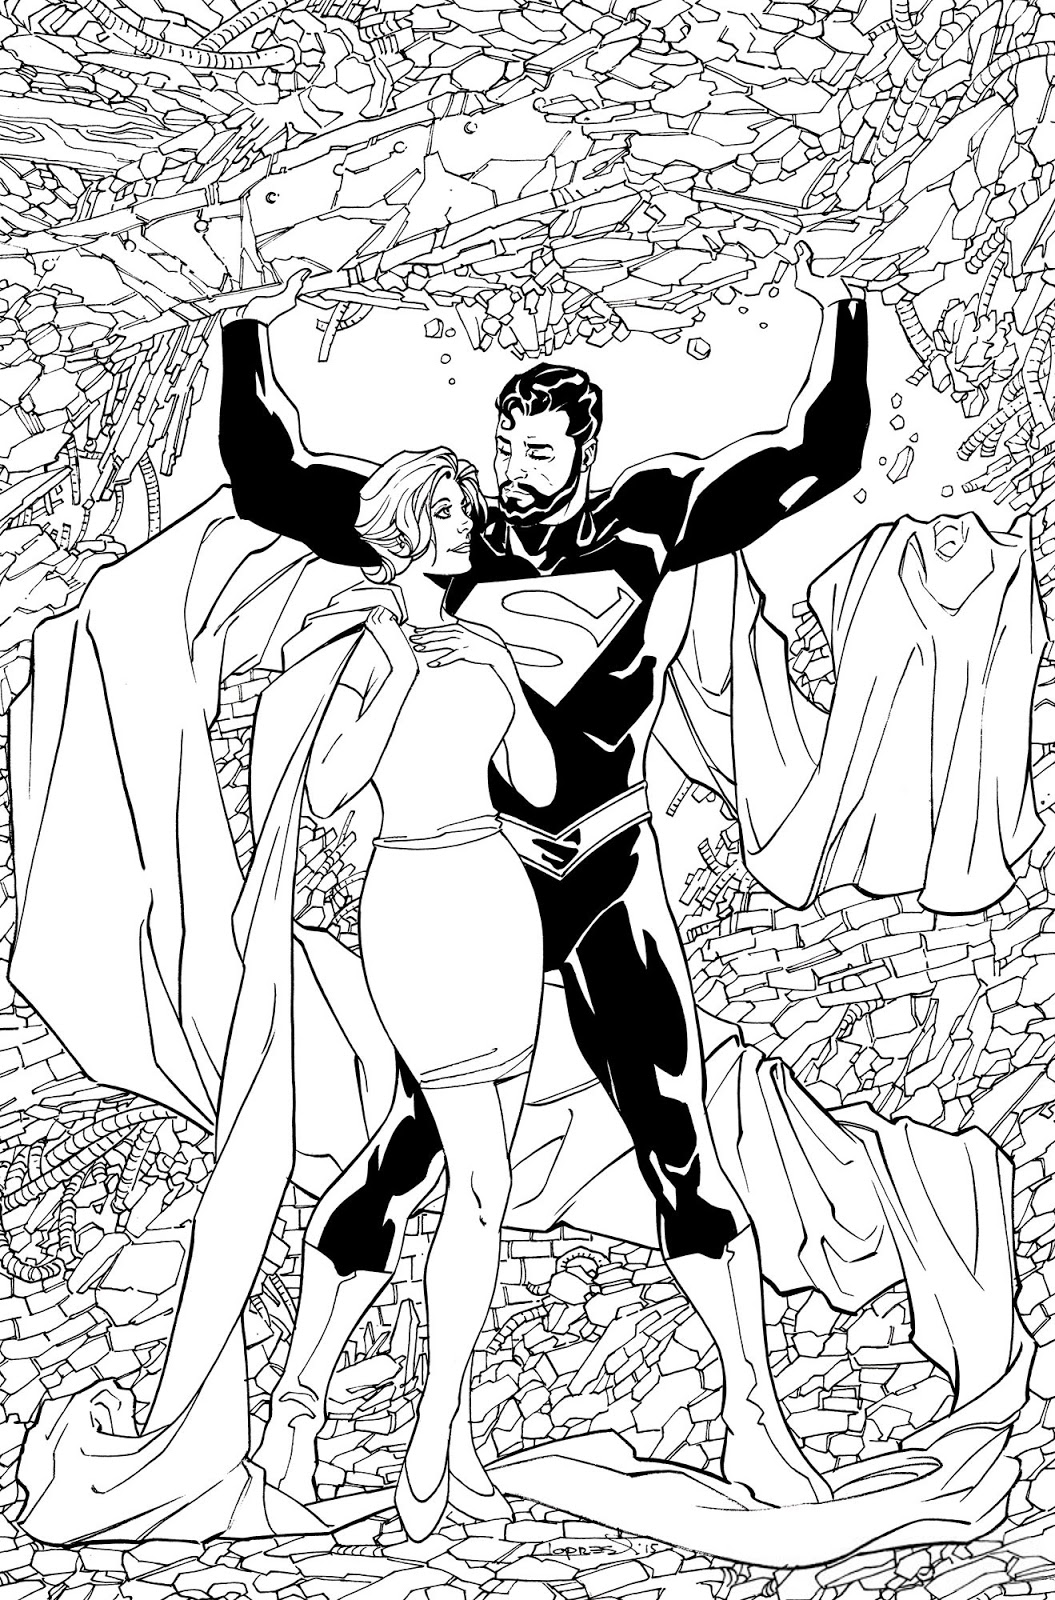 Superman Lois and Clark Vol 1 4 Textless Coloring Book Variant.jpg